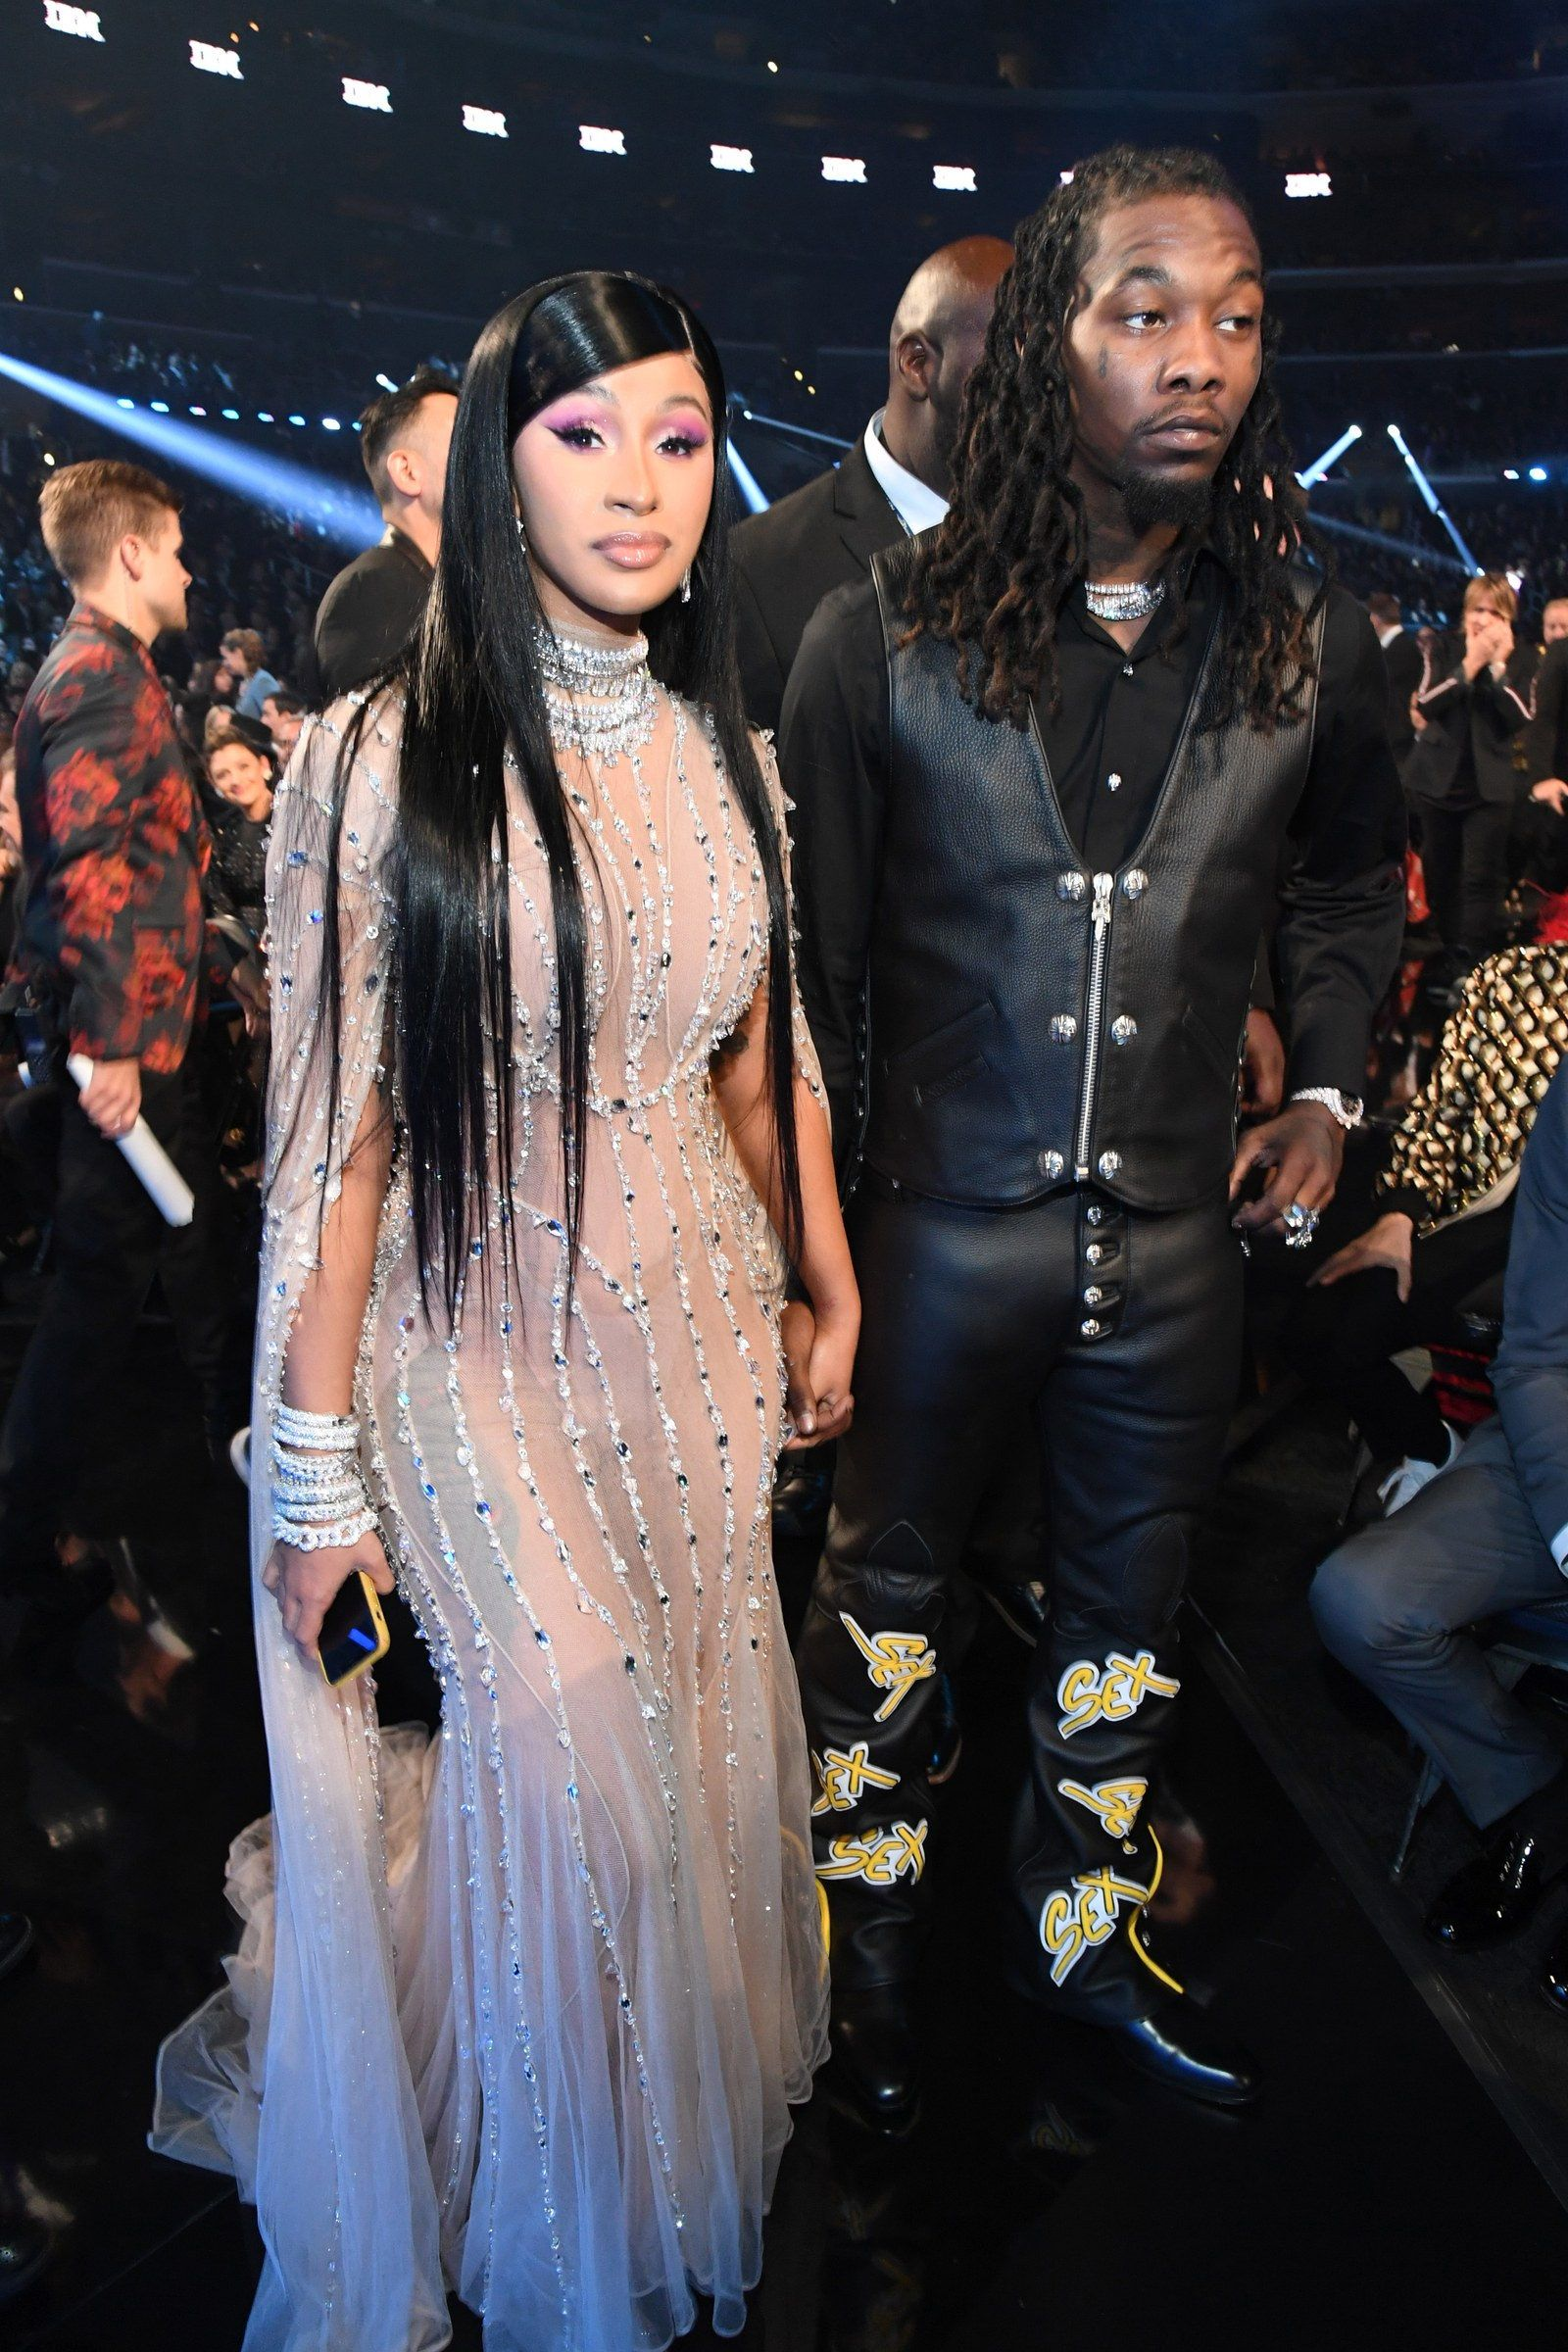 The Best Dressed Celebrities At The 2020 Grammys In 2020 Cardi B Photos Nice Dresses B Fashion